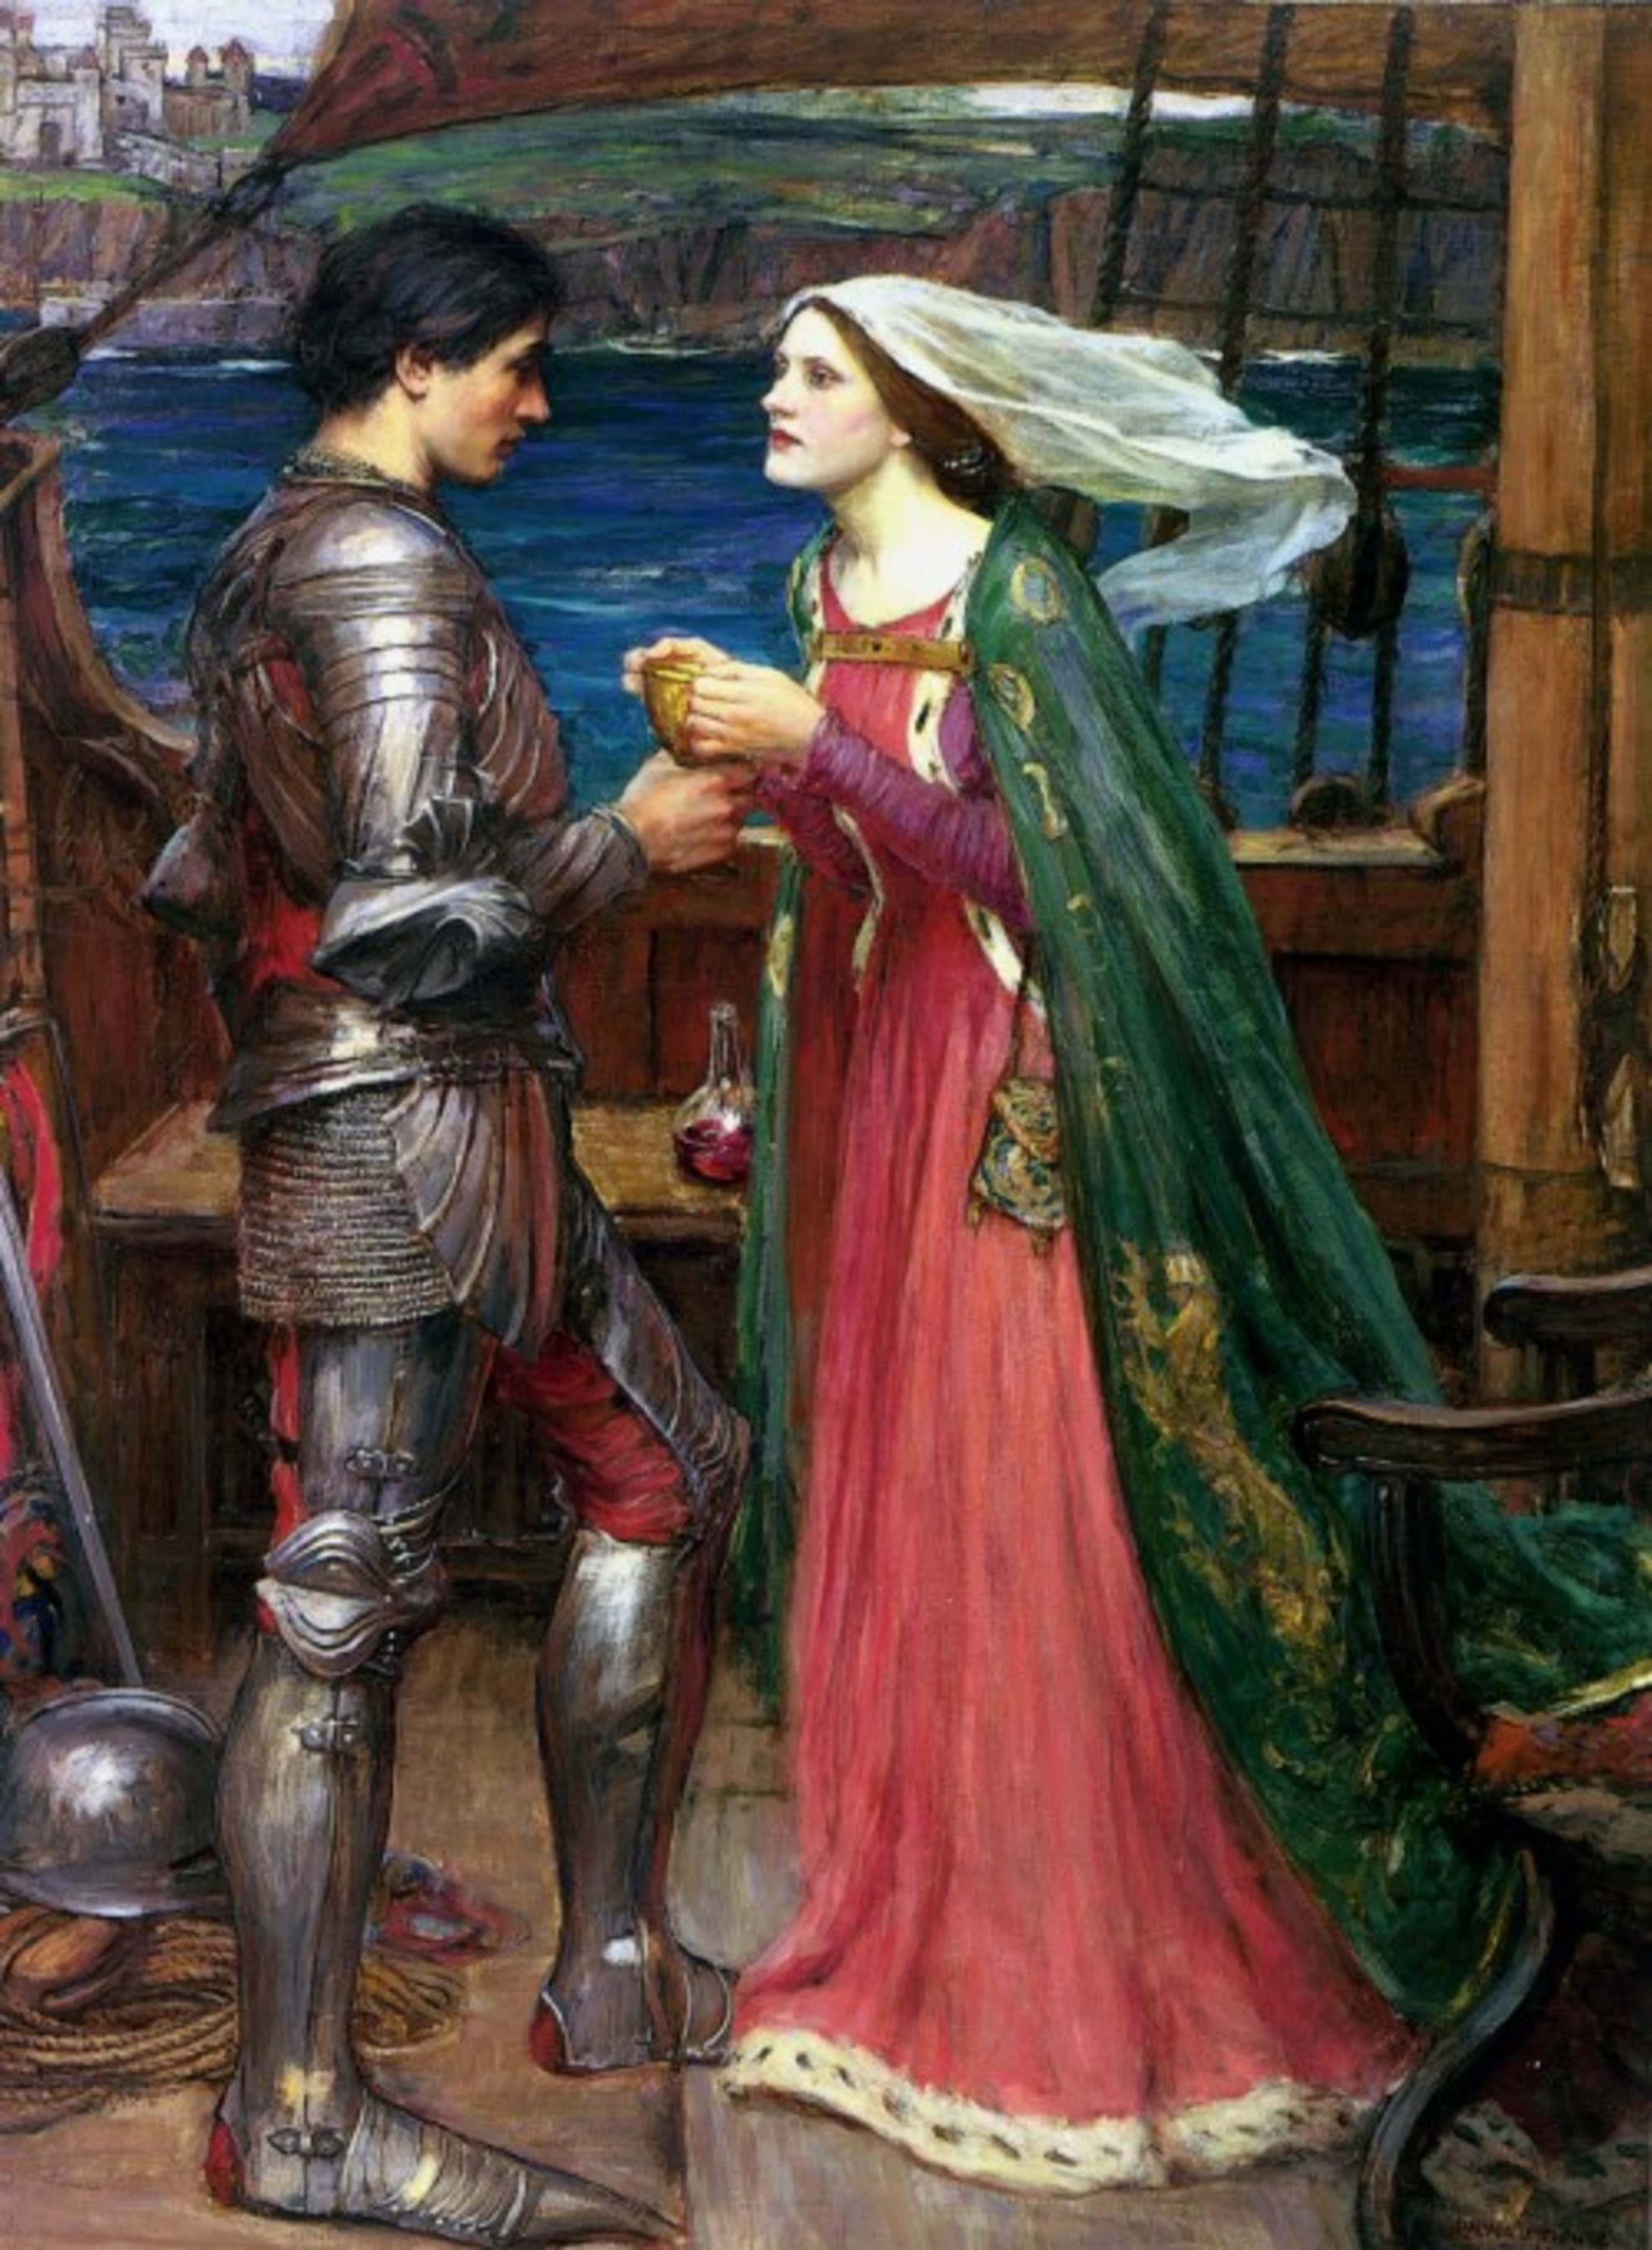 John_william_waterhouse_tristan_and_isolde_with_the_potion.jpg